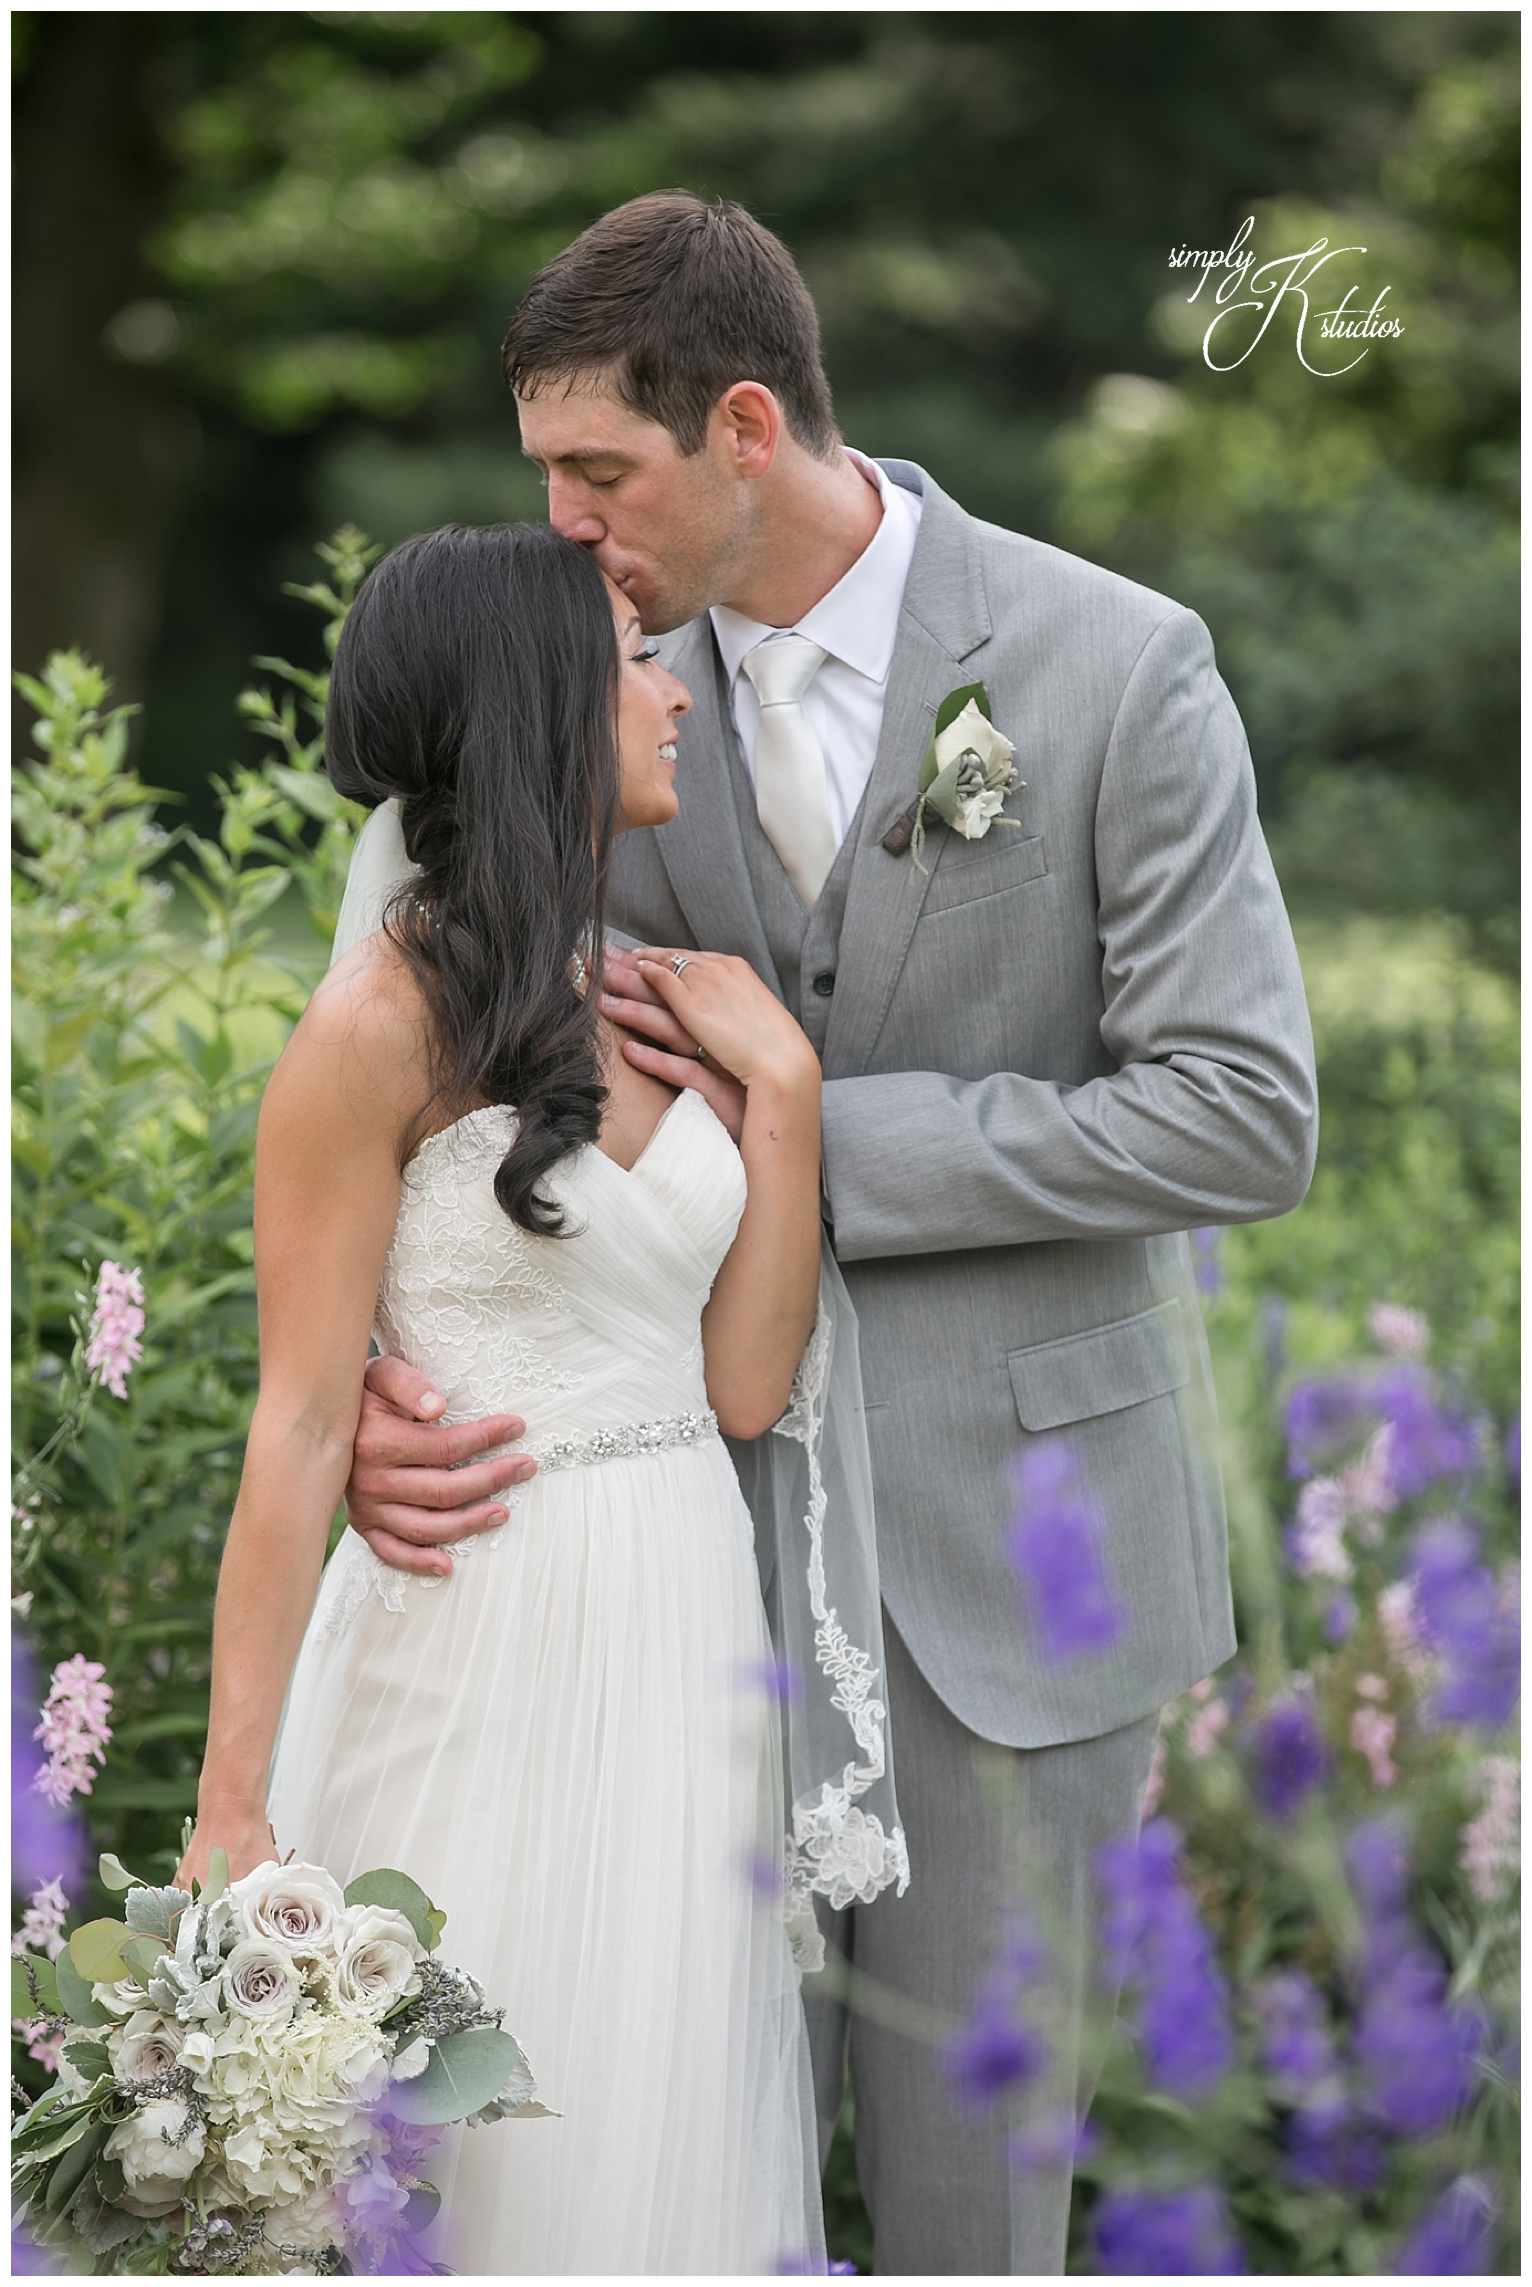 Bride and Groom Photos in Wethersfield CT.jpg